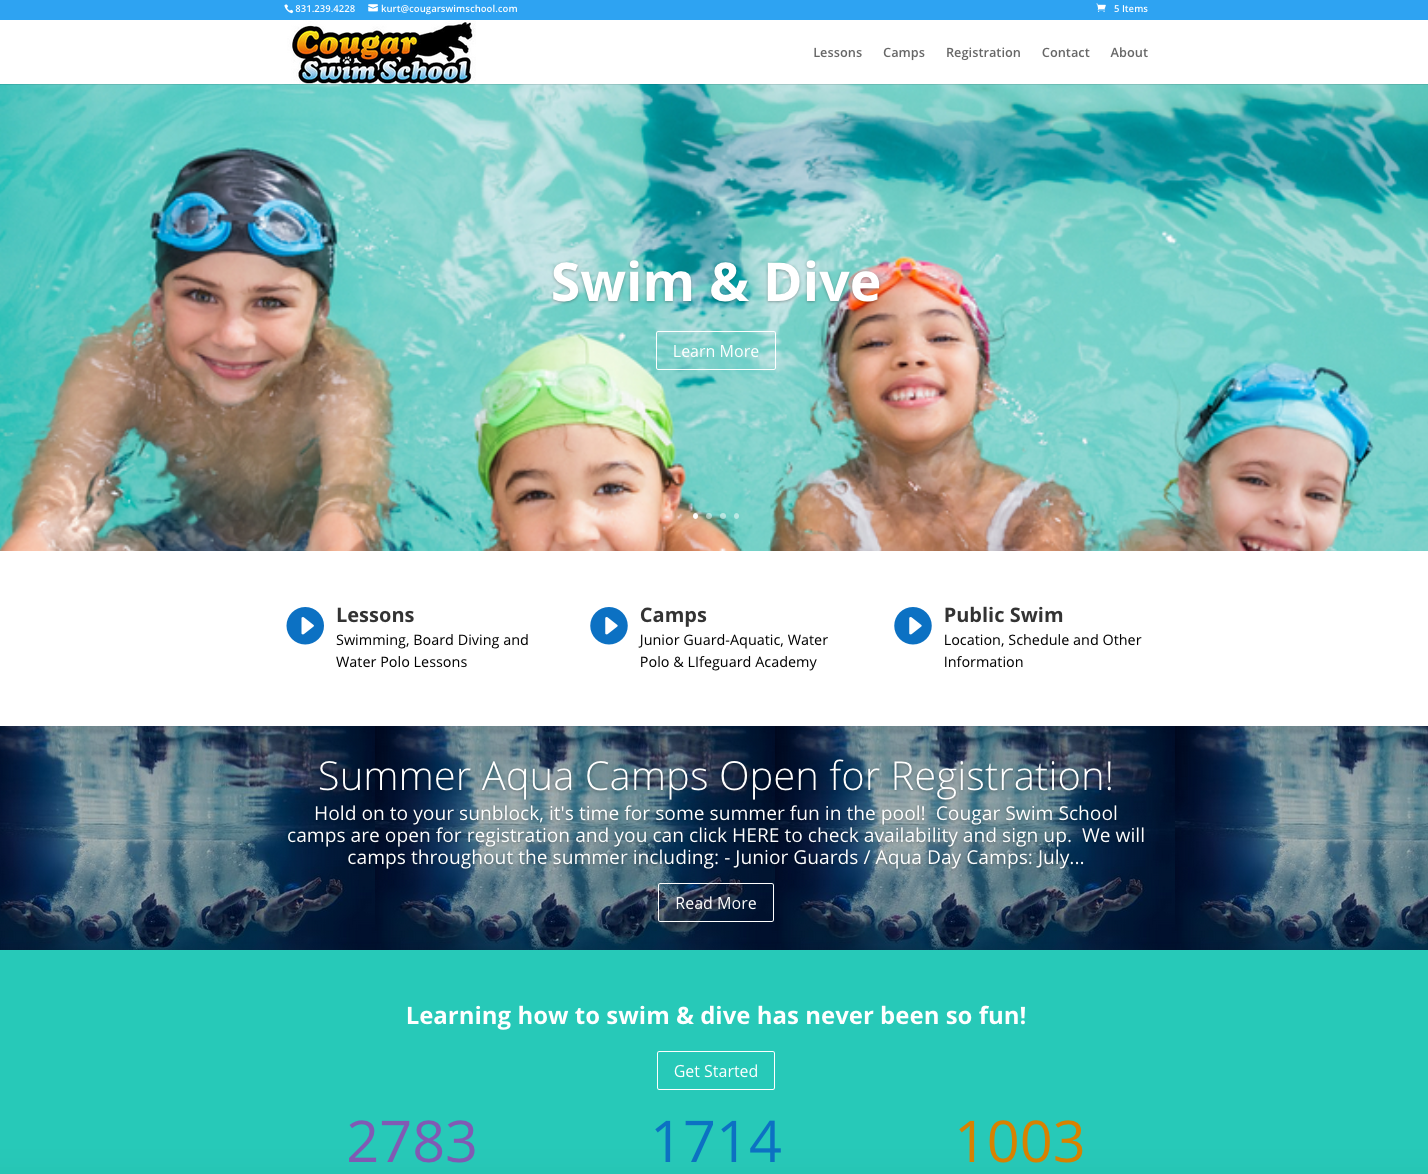 Cougar Swim School